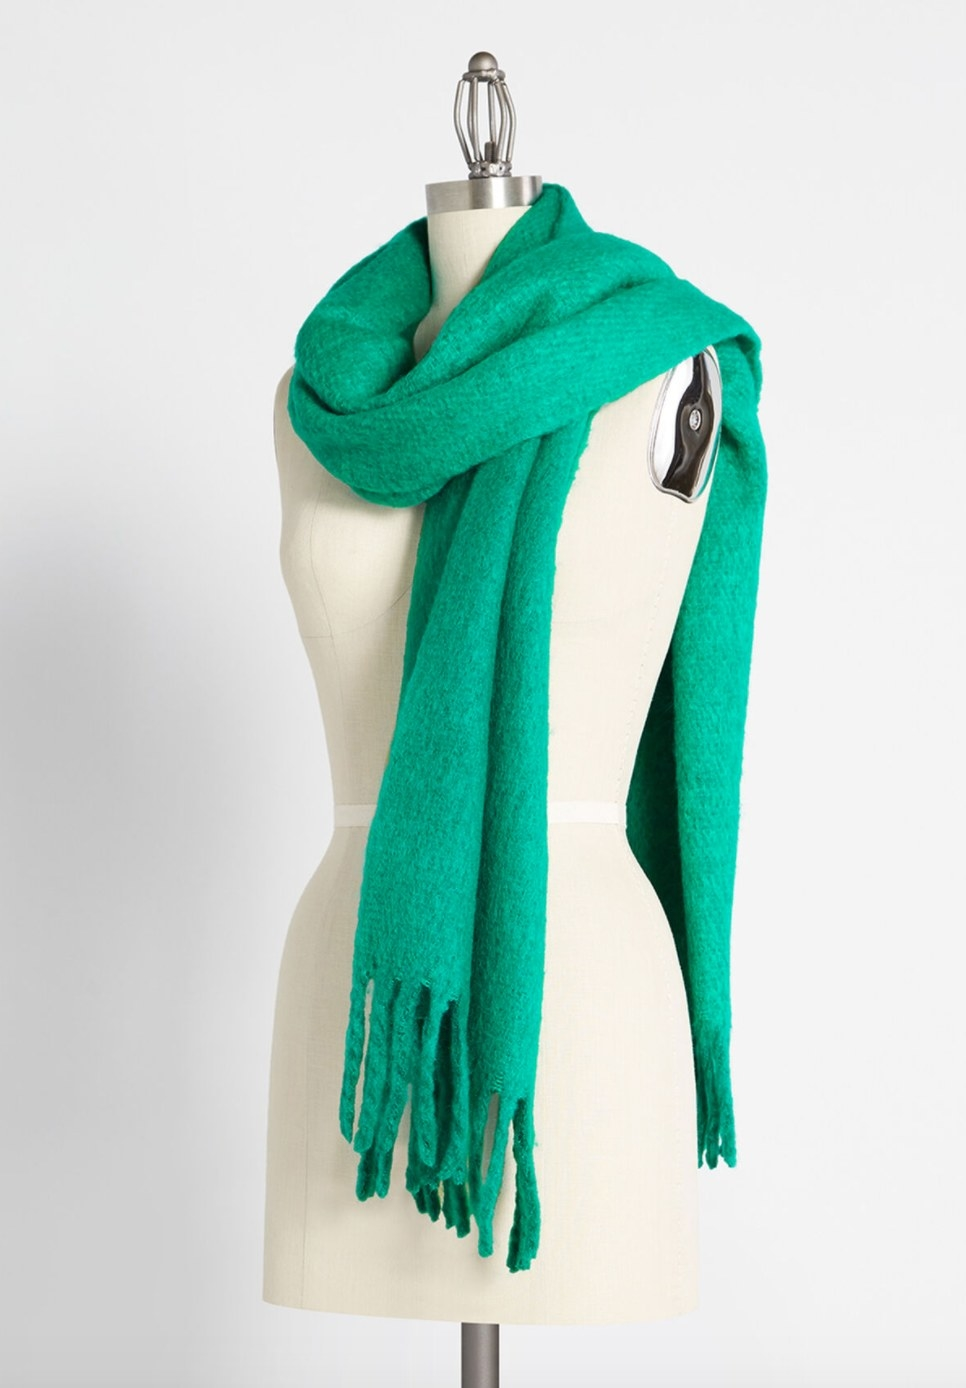 The cozy scarf in green